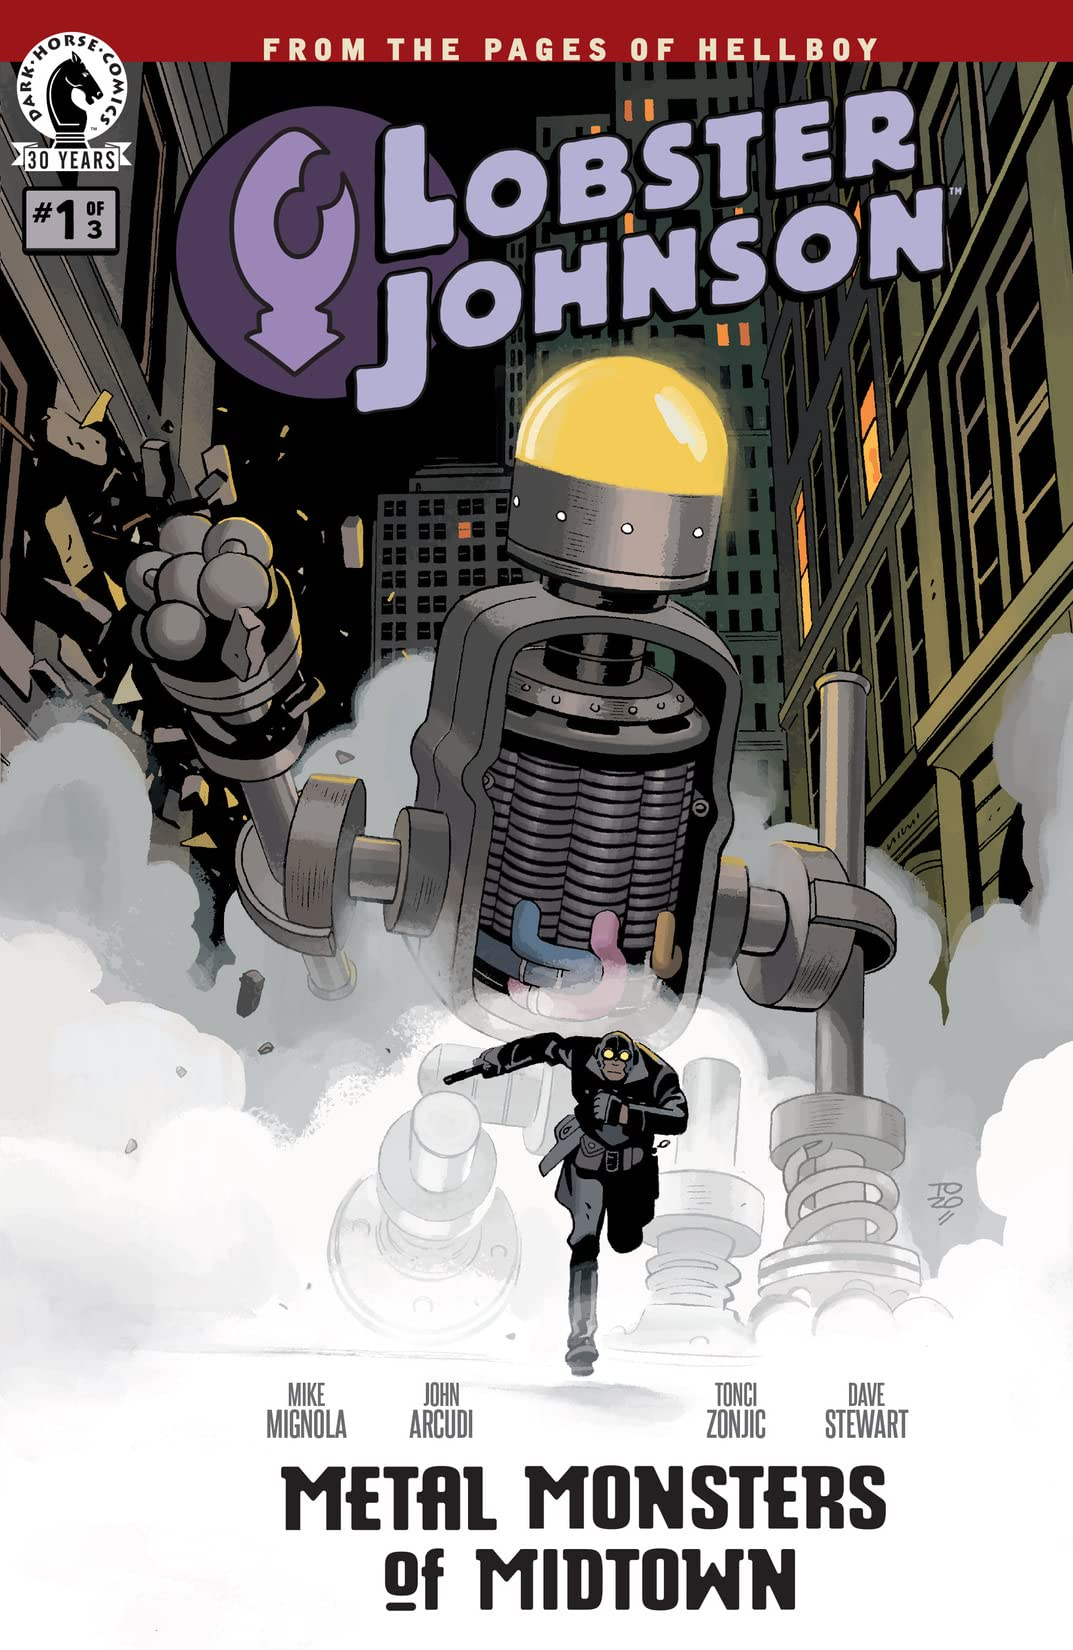 Lobster Johnson: Metal Monsters of Midtown #1